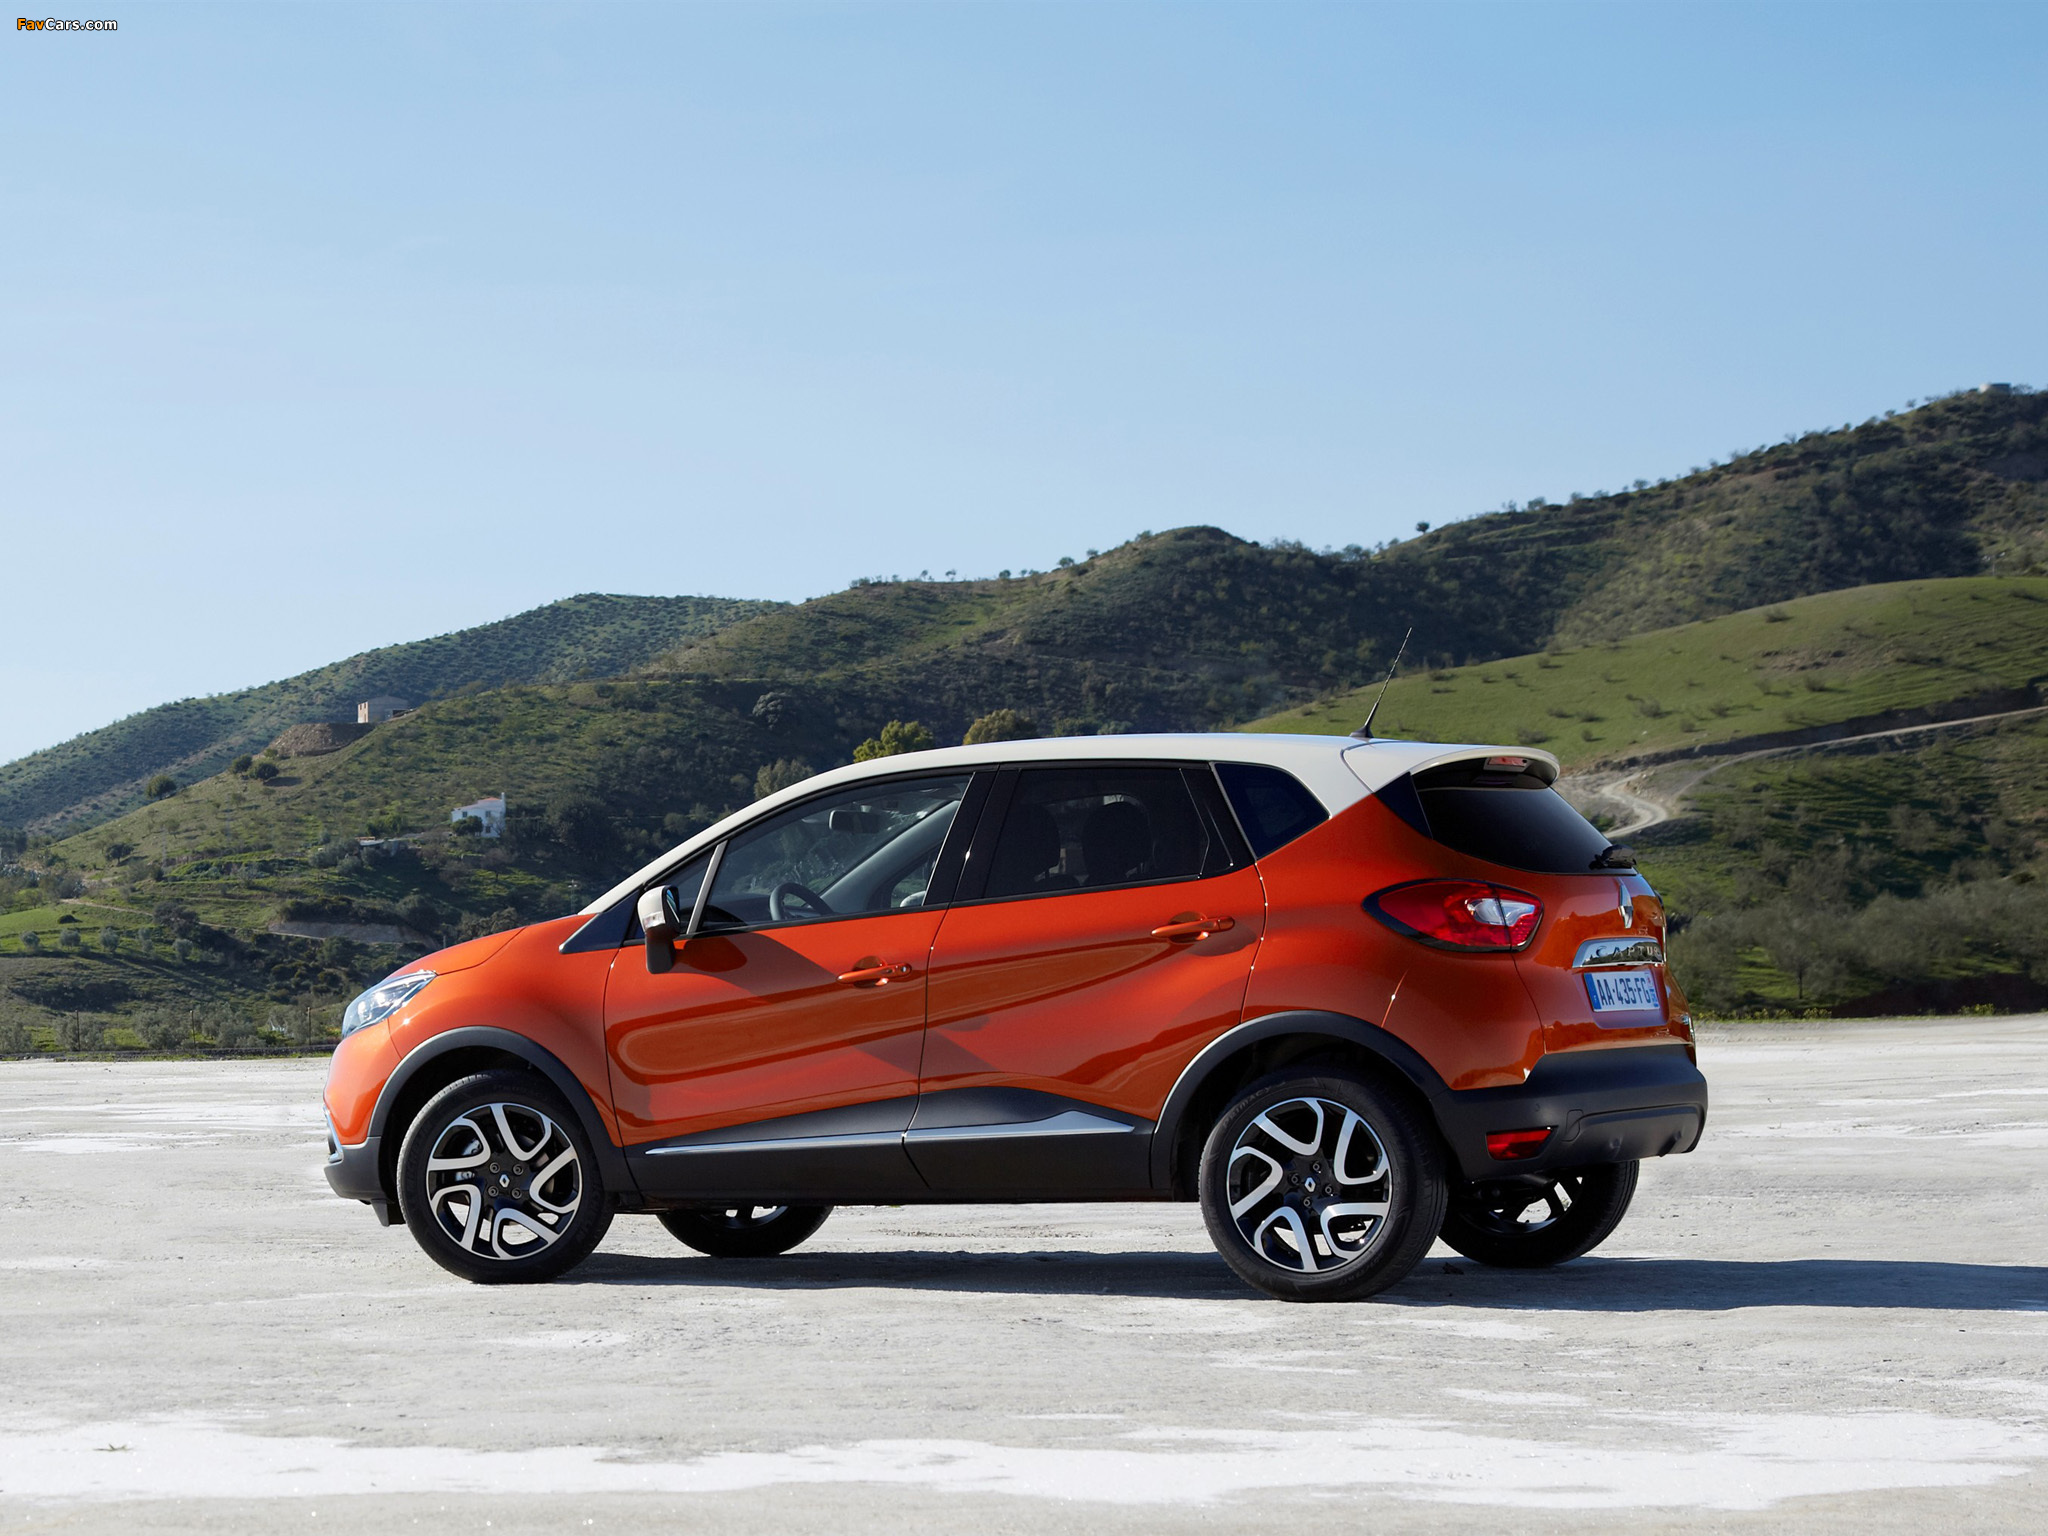 wallpapers_renault_captur_2013_5